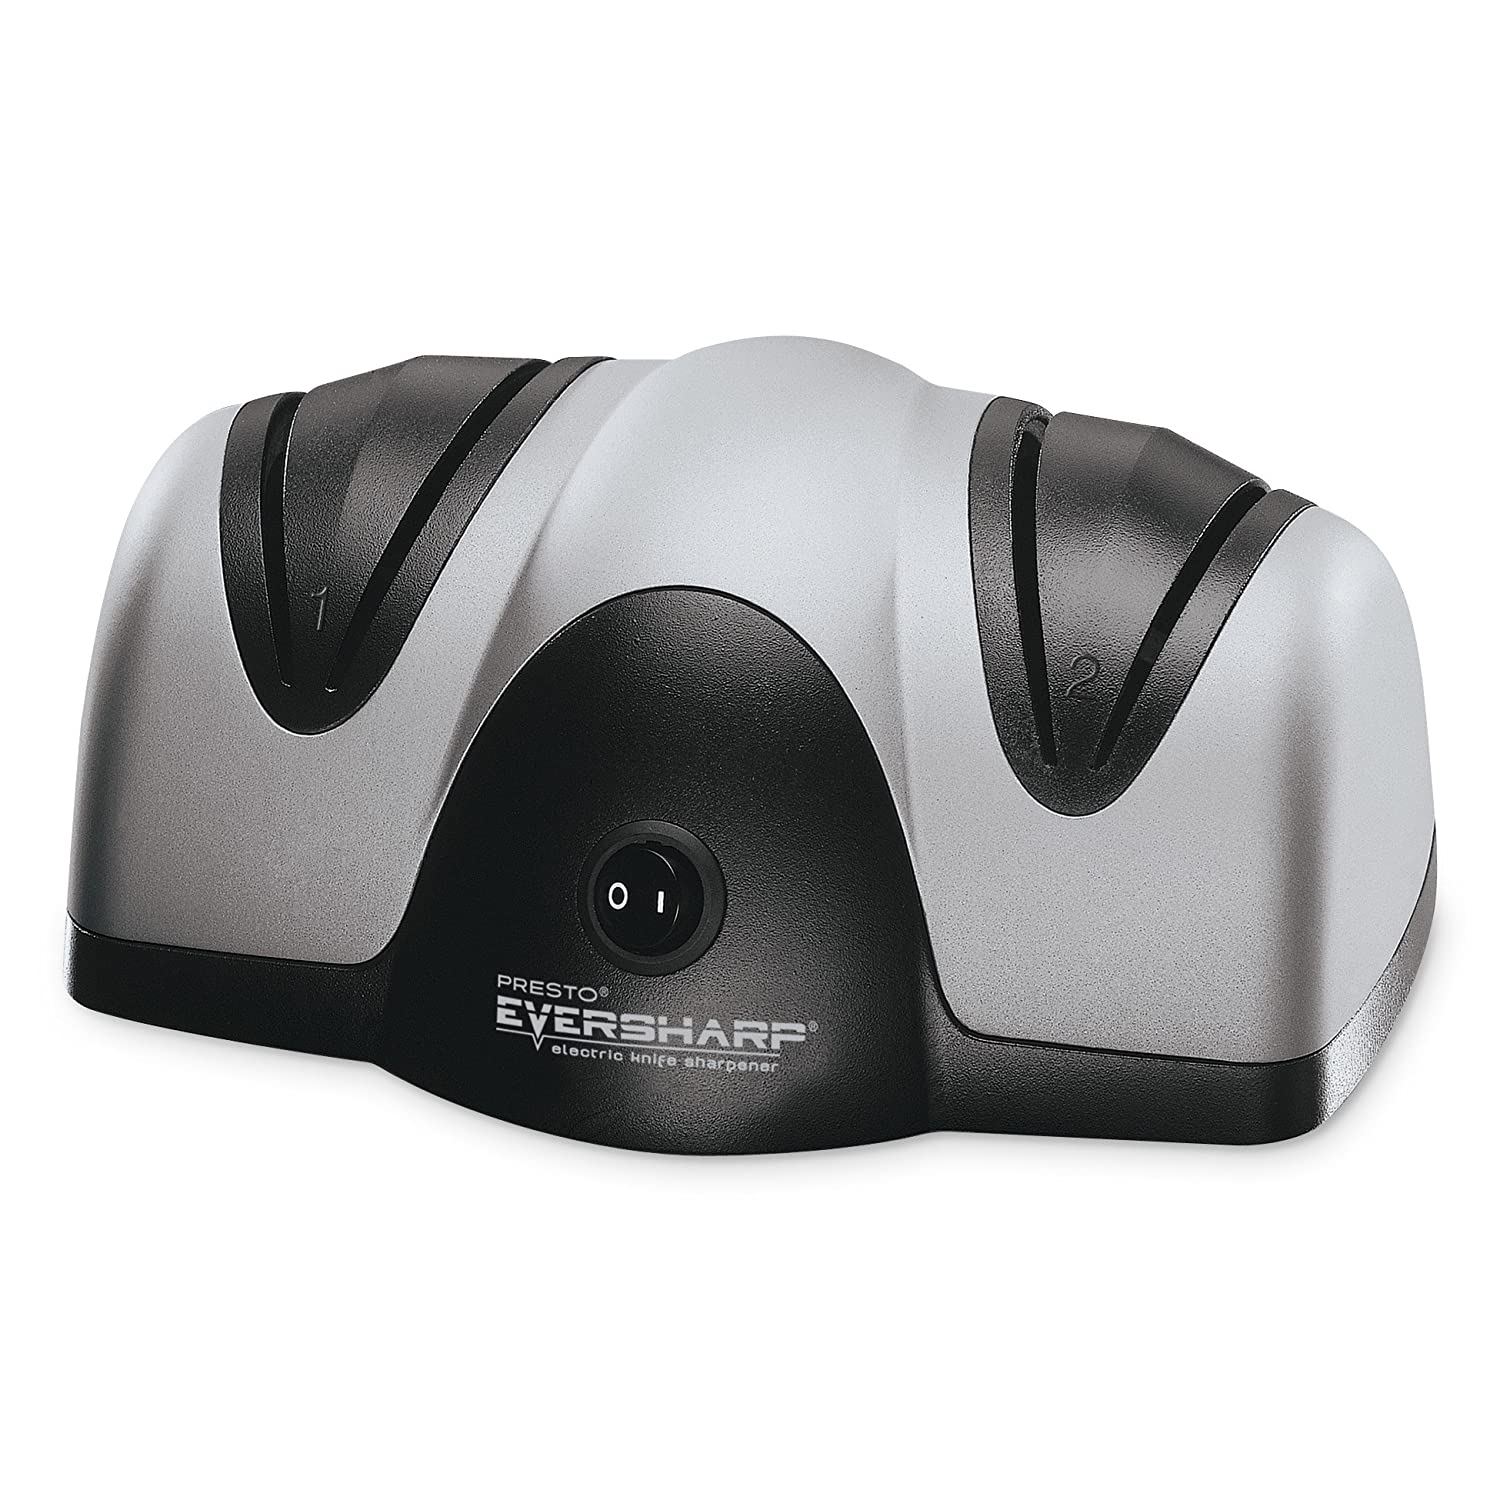 Top 10 Best Electric Knife Sharpener (2020 Reviews & Guide) 4